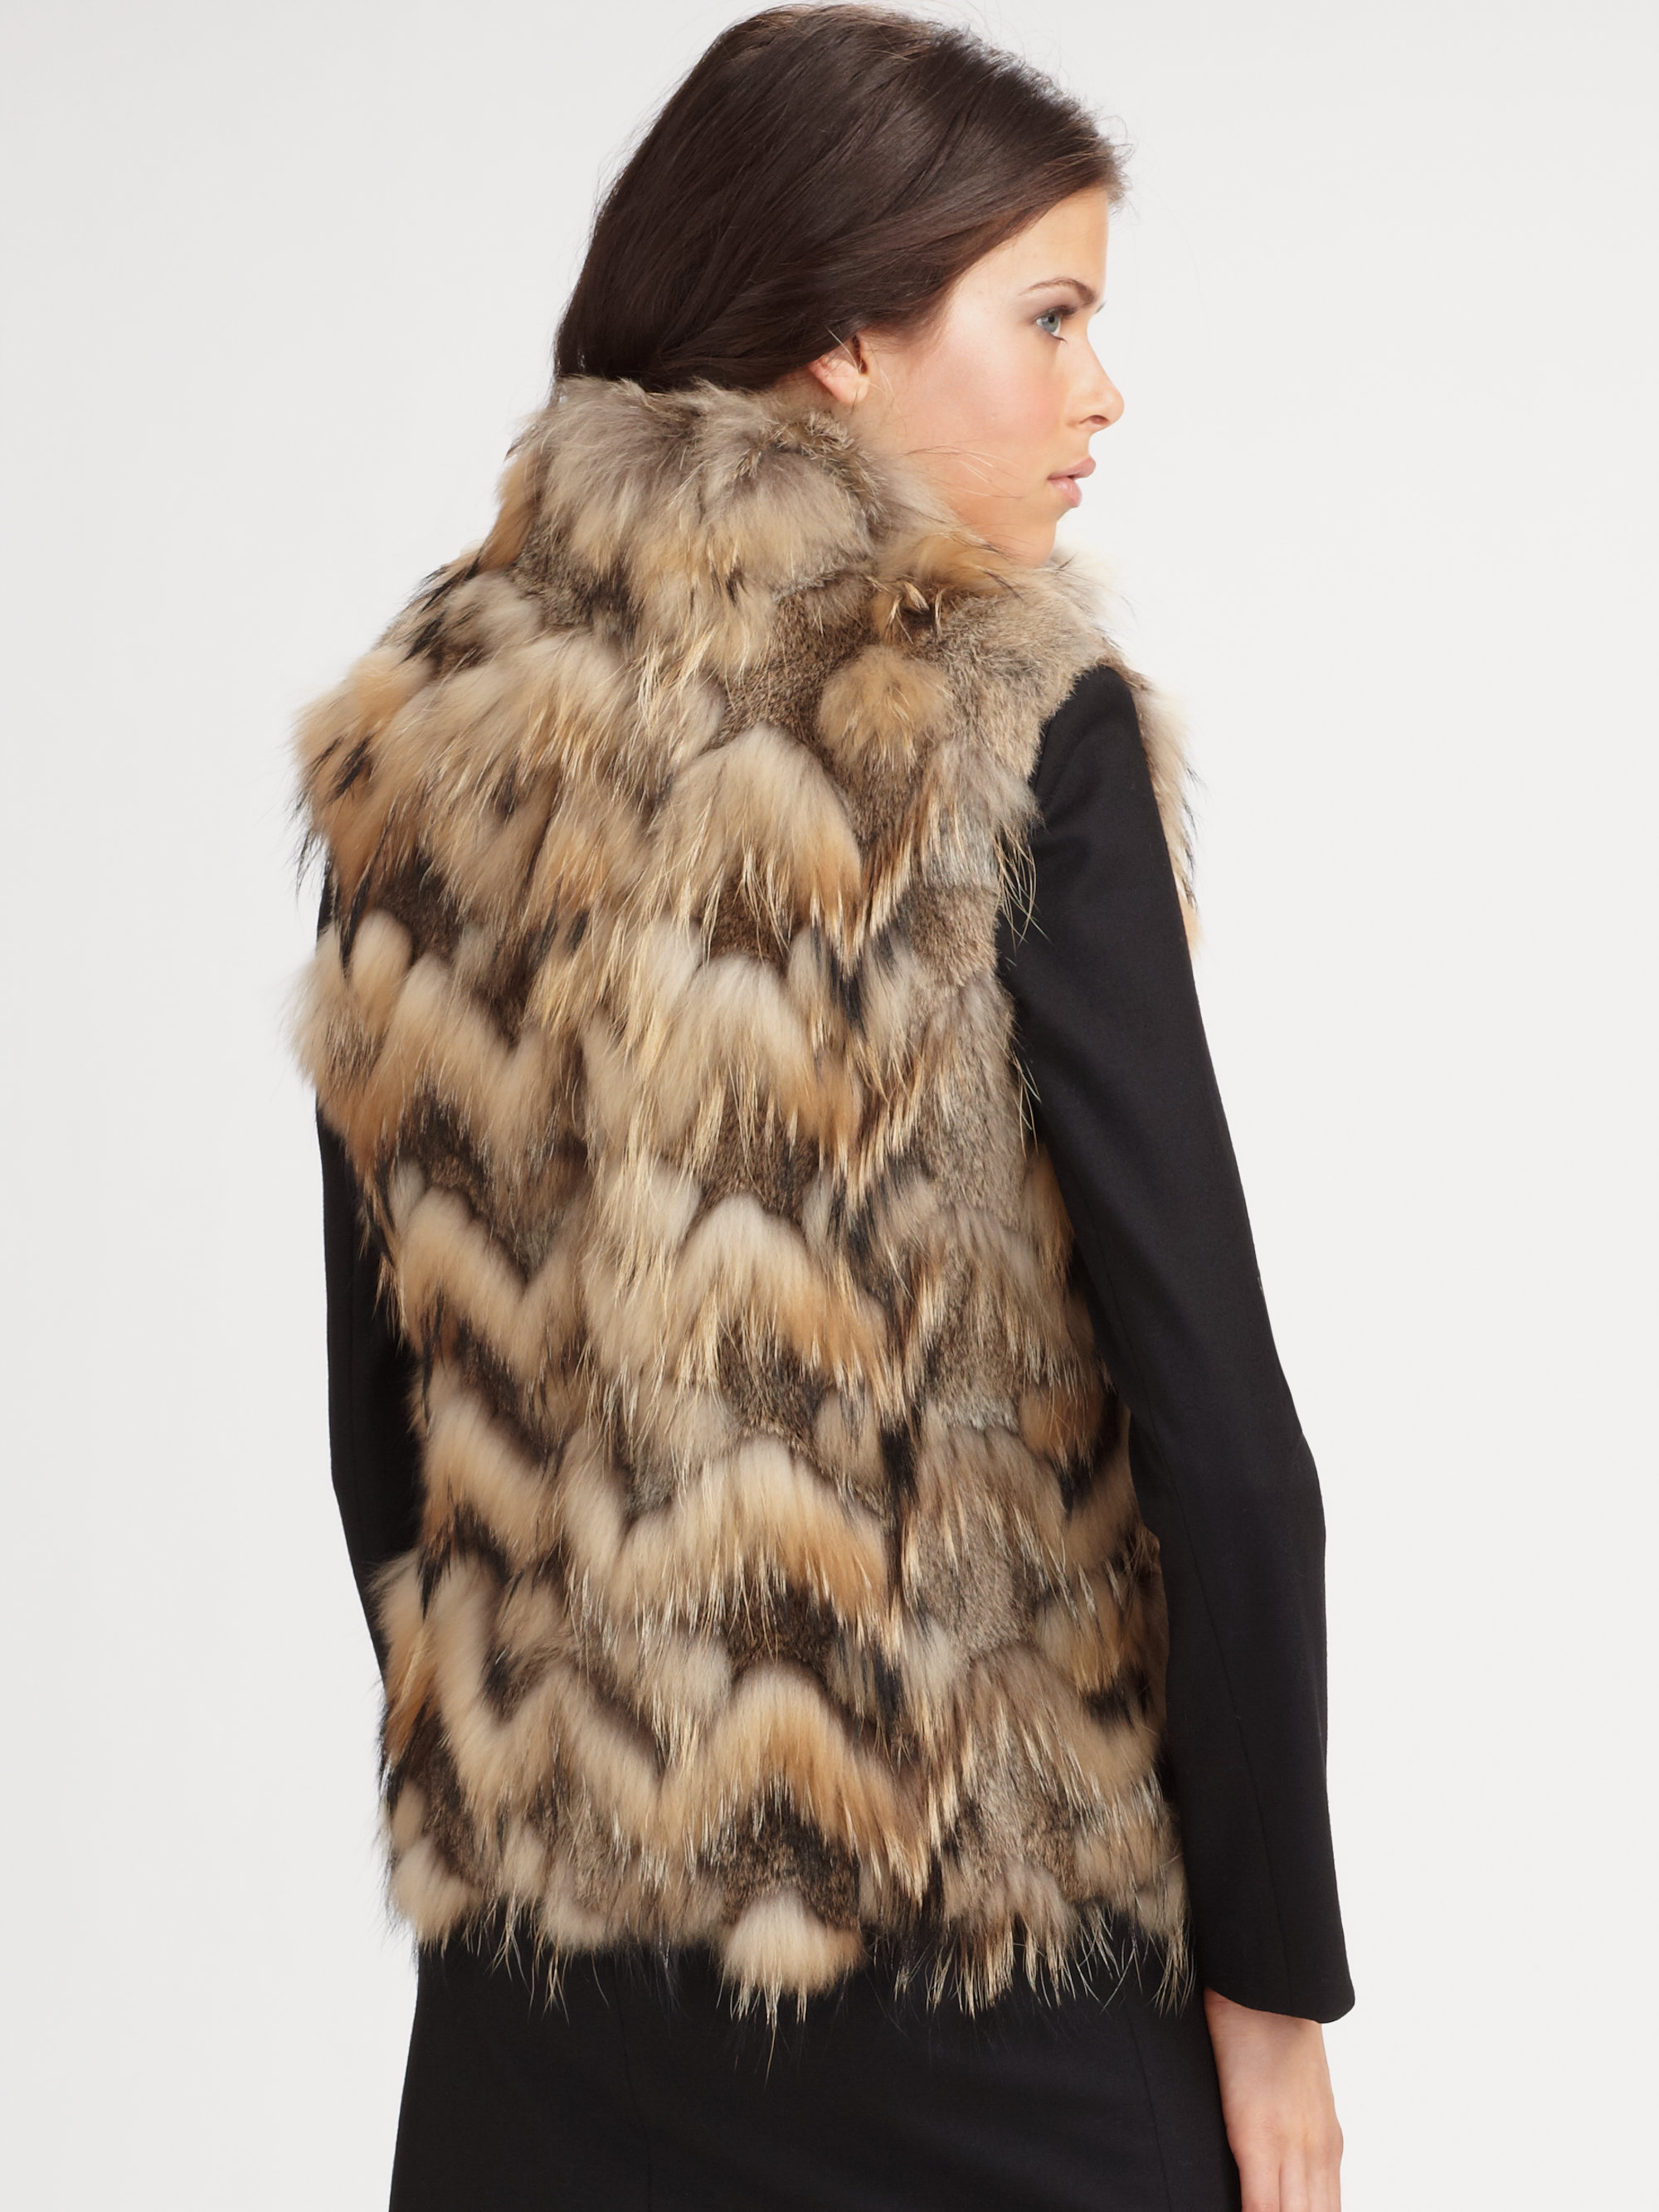 Raccoon vest theory investment executive salary fifth third